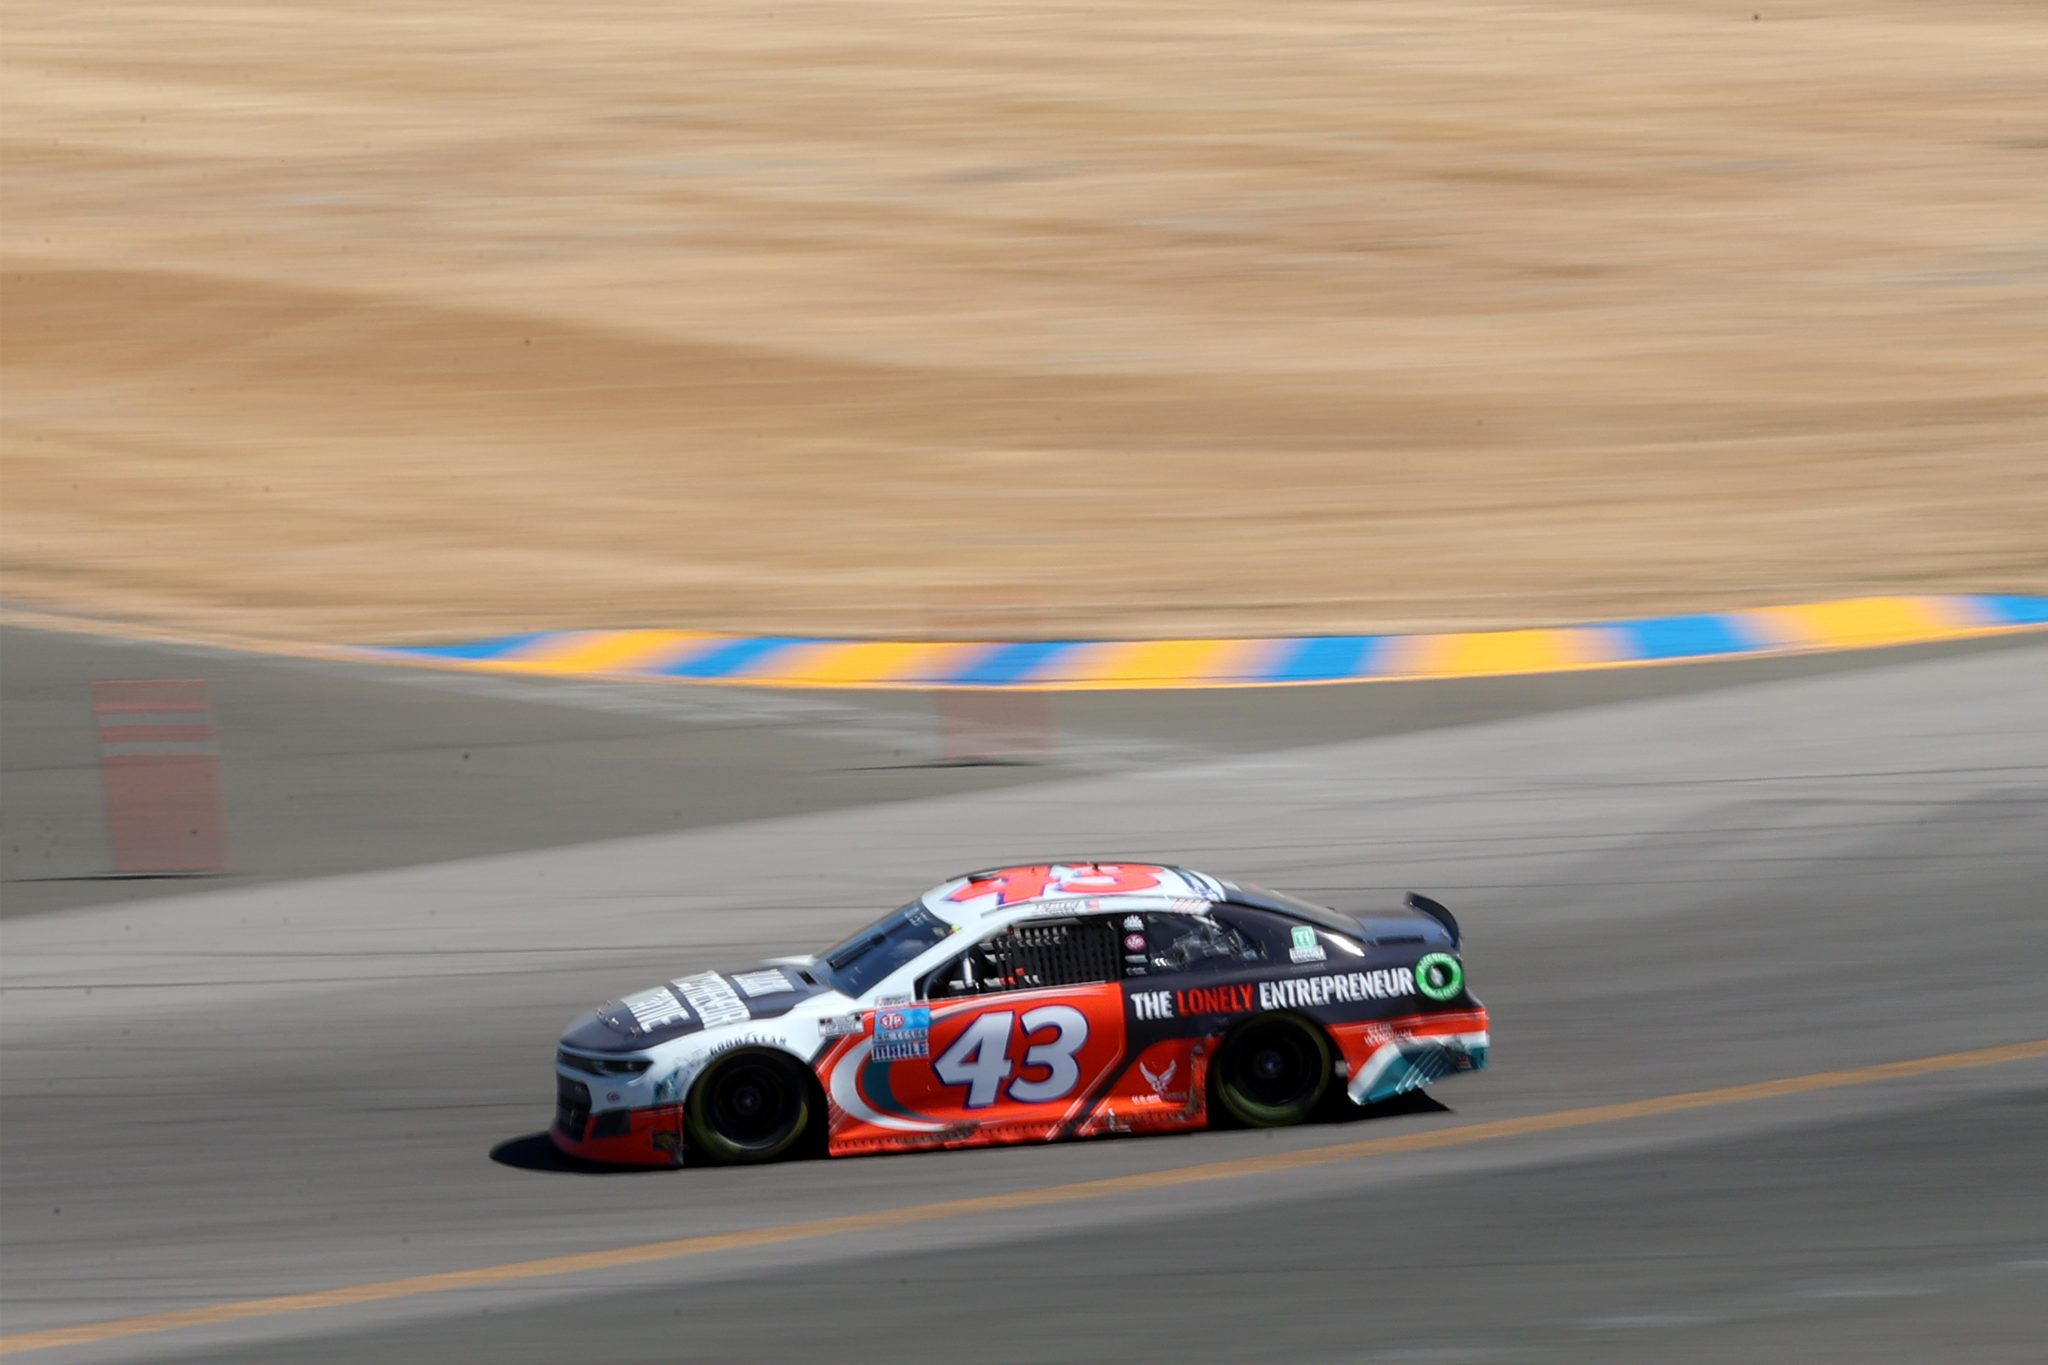 SONOMA, CALIFORNIA - JUNE 06: Erik Jones, driver of the #43 Black Entrepreneur Initiative Chevrolet, drives during the NASCAR Cup Series Toyota/Save Mart 350 at Sonoma Raceway on June 06, 2021 in Sonoma, California. (Photo by Carmen Mandato/Getty Images) | Getty Images